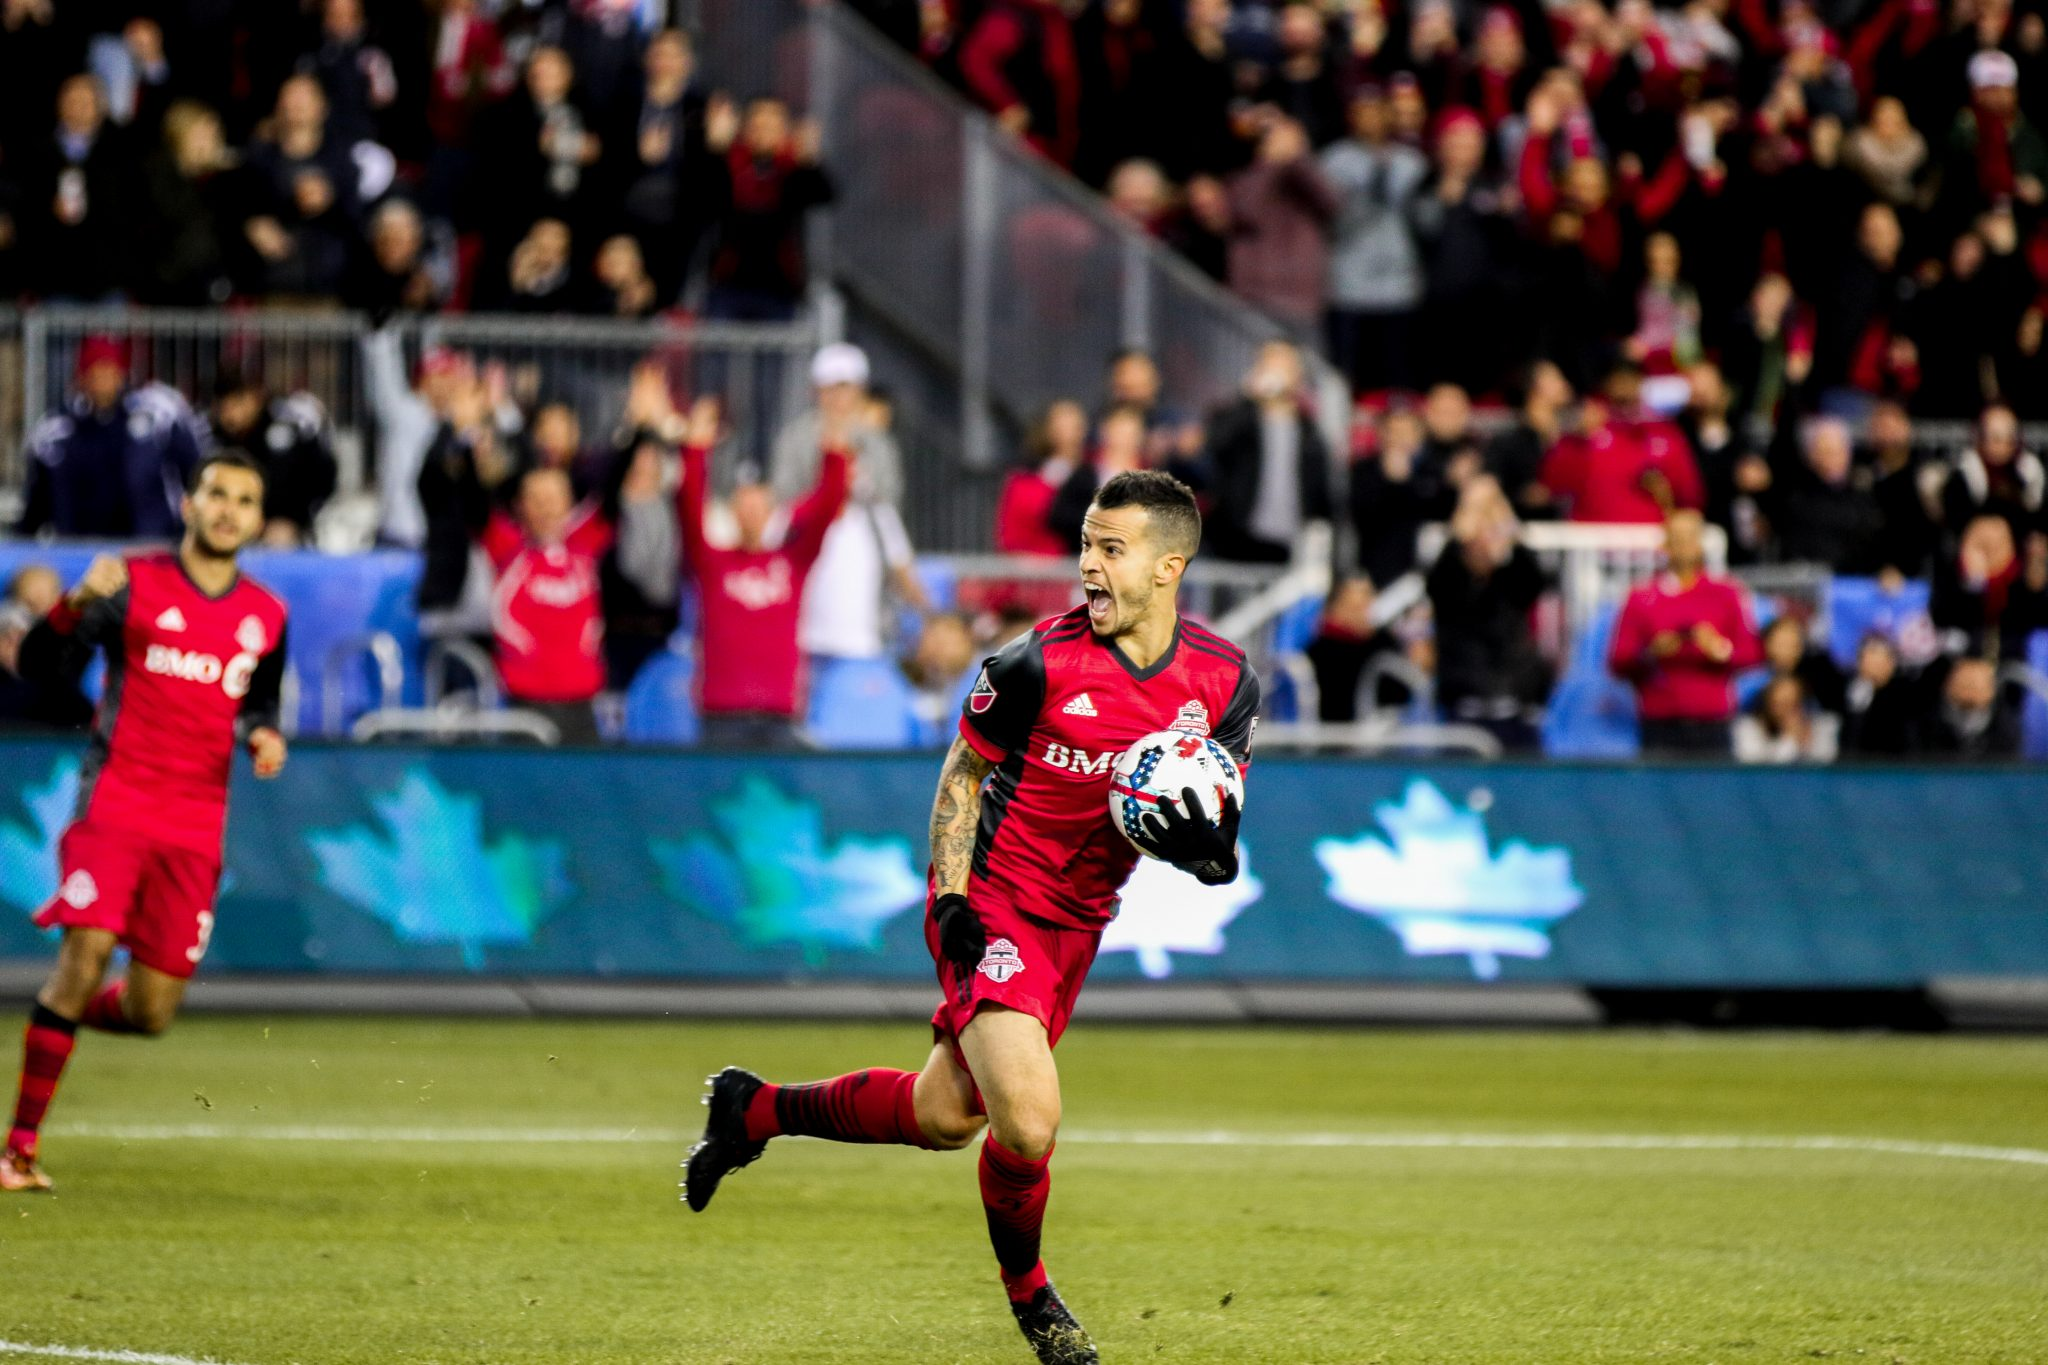 Sebastian Giovinco celebrates after scoring for TFC. Luke Galati/Toronto FC